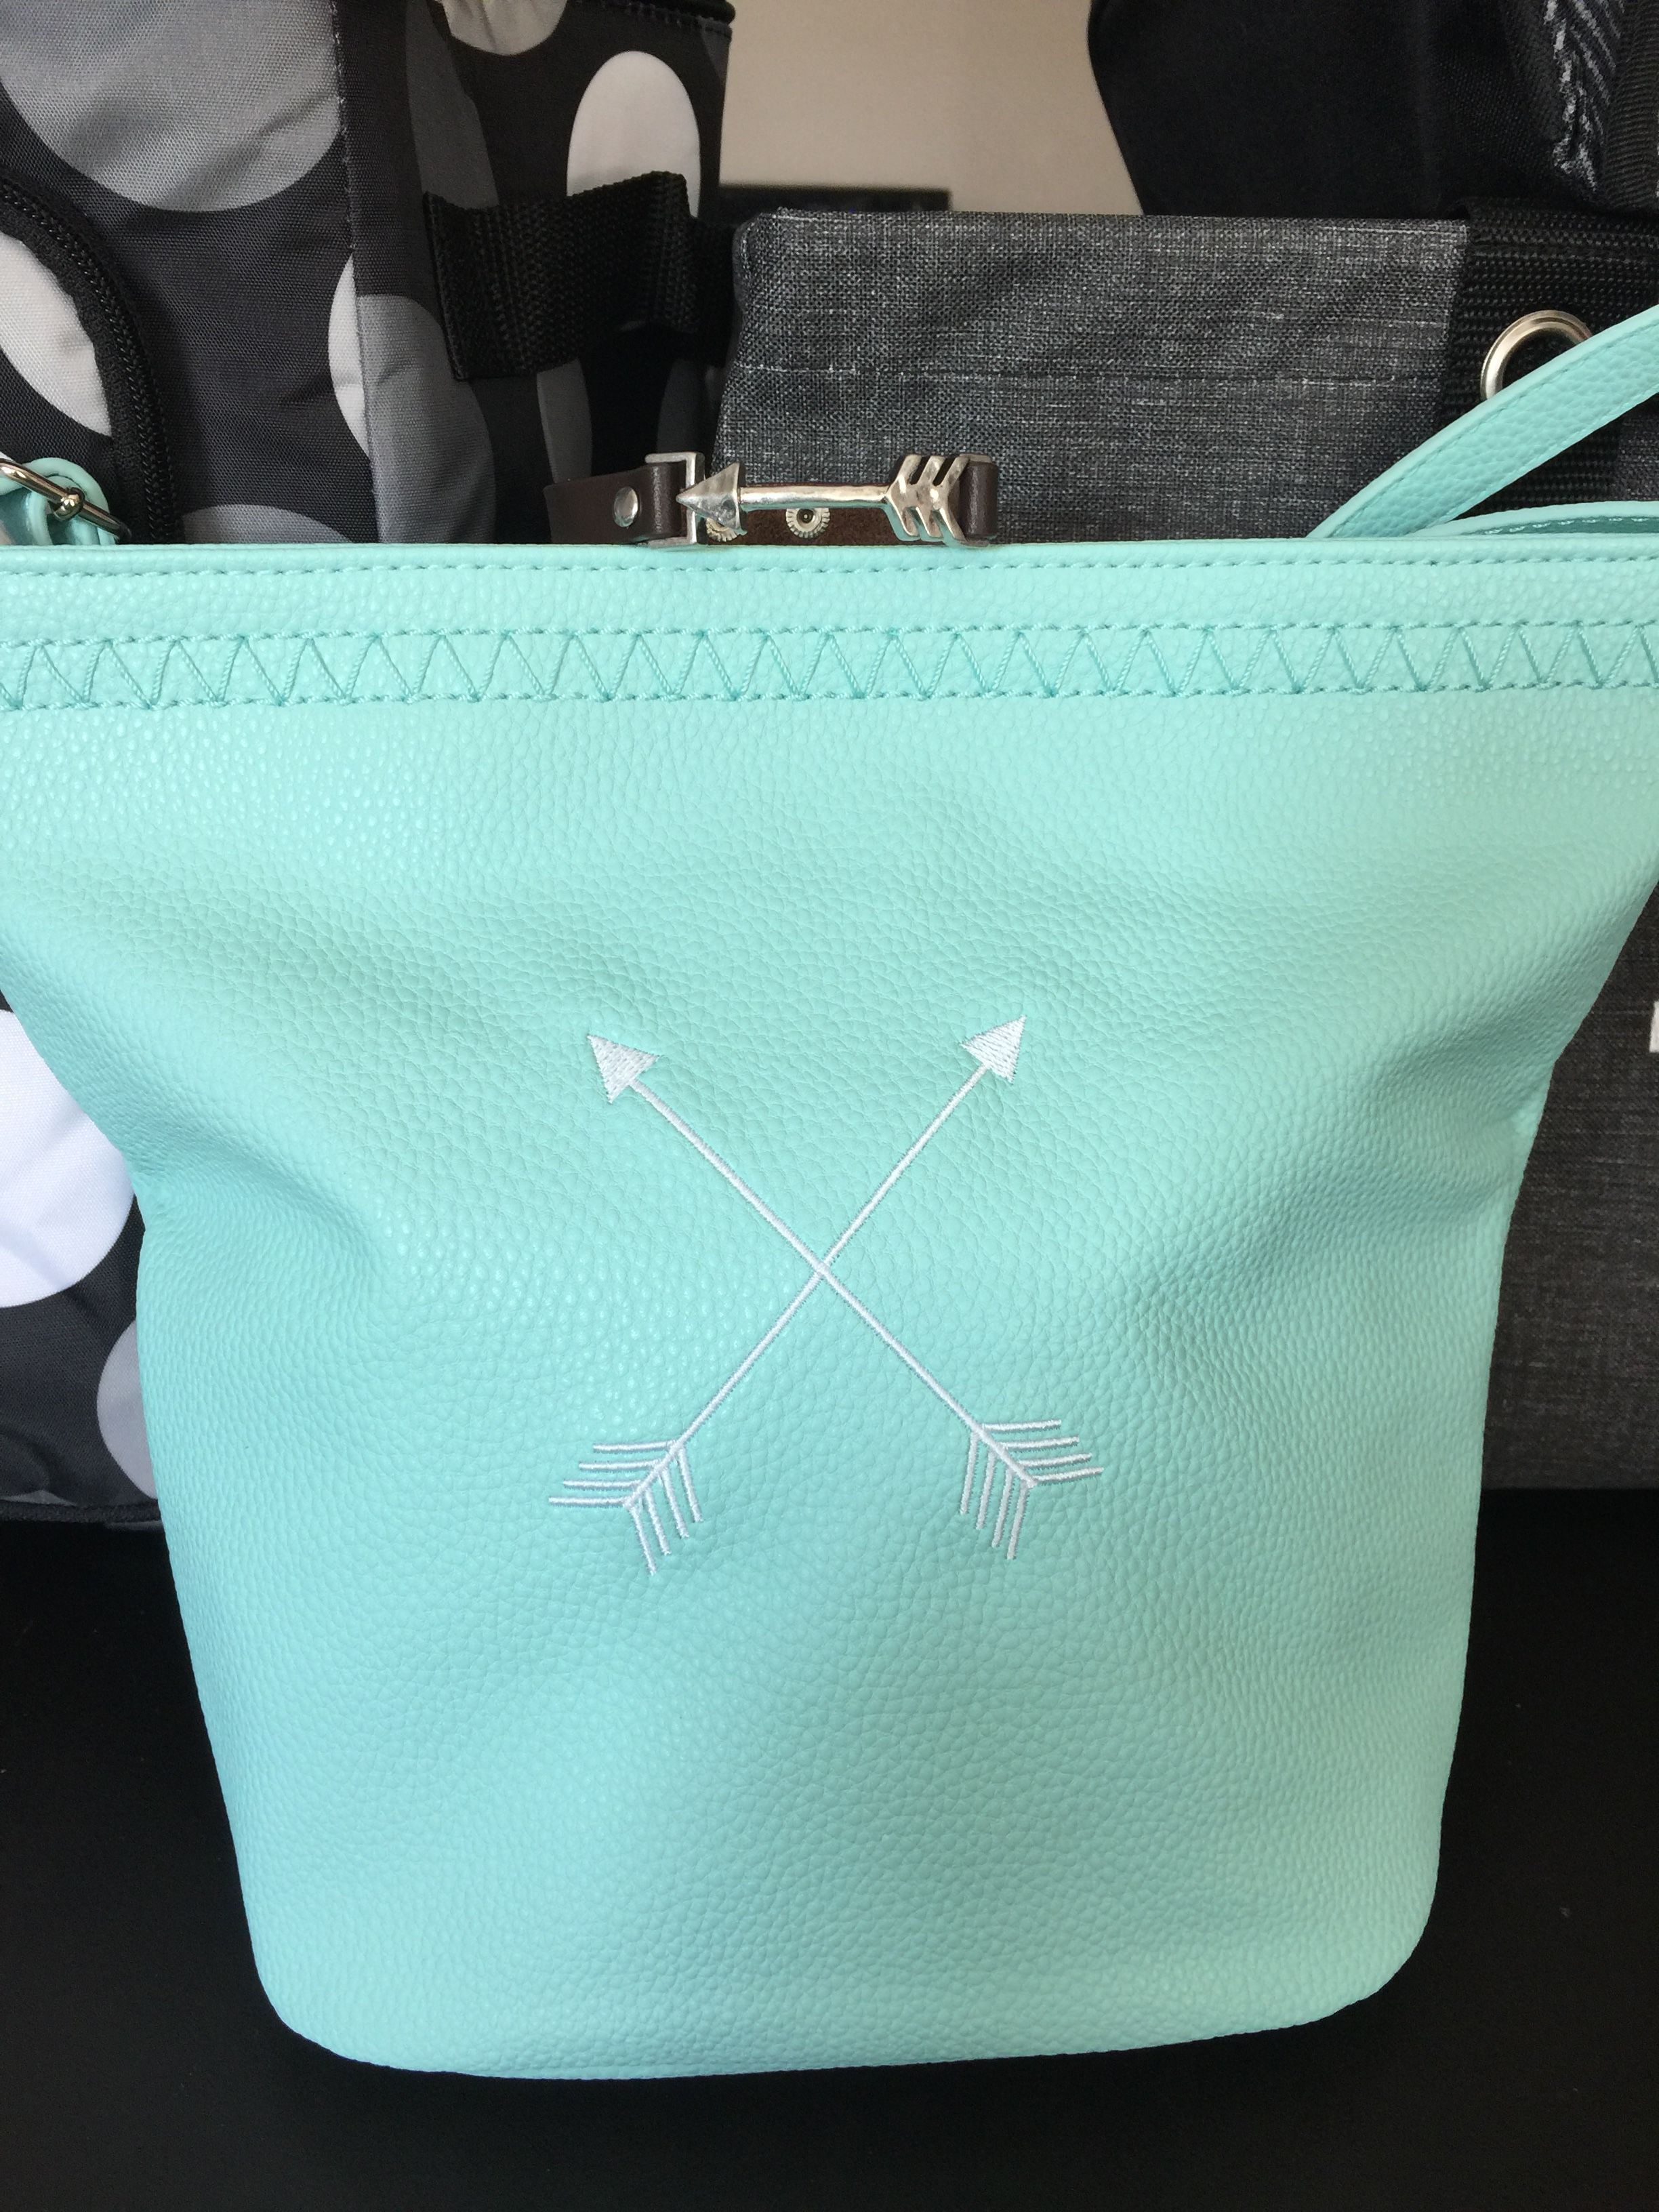 Love How It Can Take Your Look To A Whole New Level Skiesforyour Arrow Cafecrossbody Thirtyonegifts Thirtyone Jillsstylishsolutions